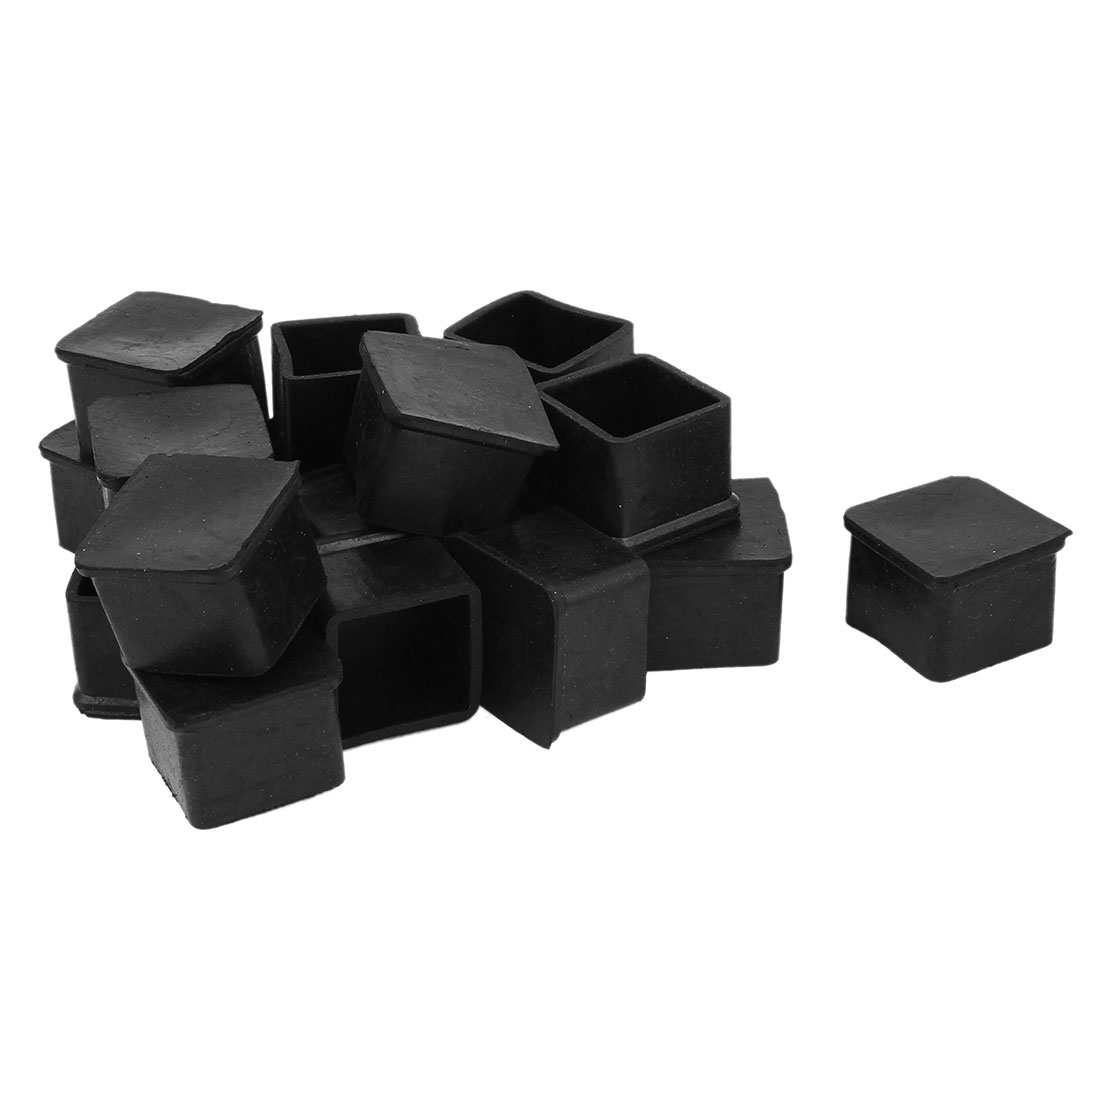 Furniture Table Rubber Square Leg Foot Cover Holder 30mm x 30mm 19 Pcs